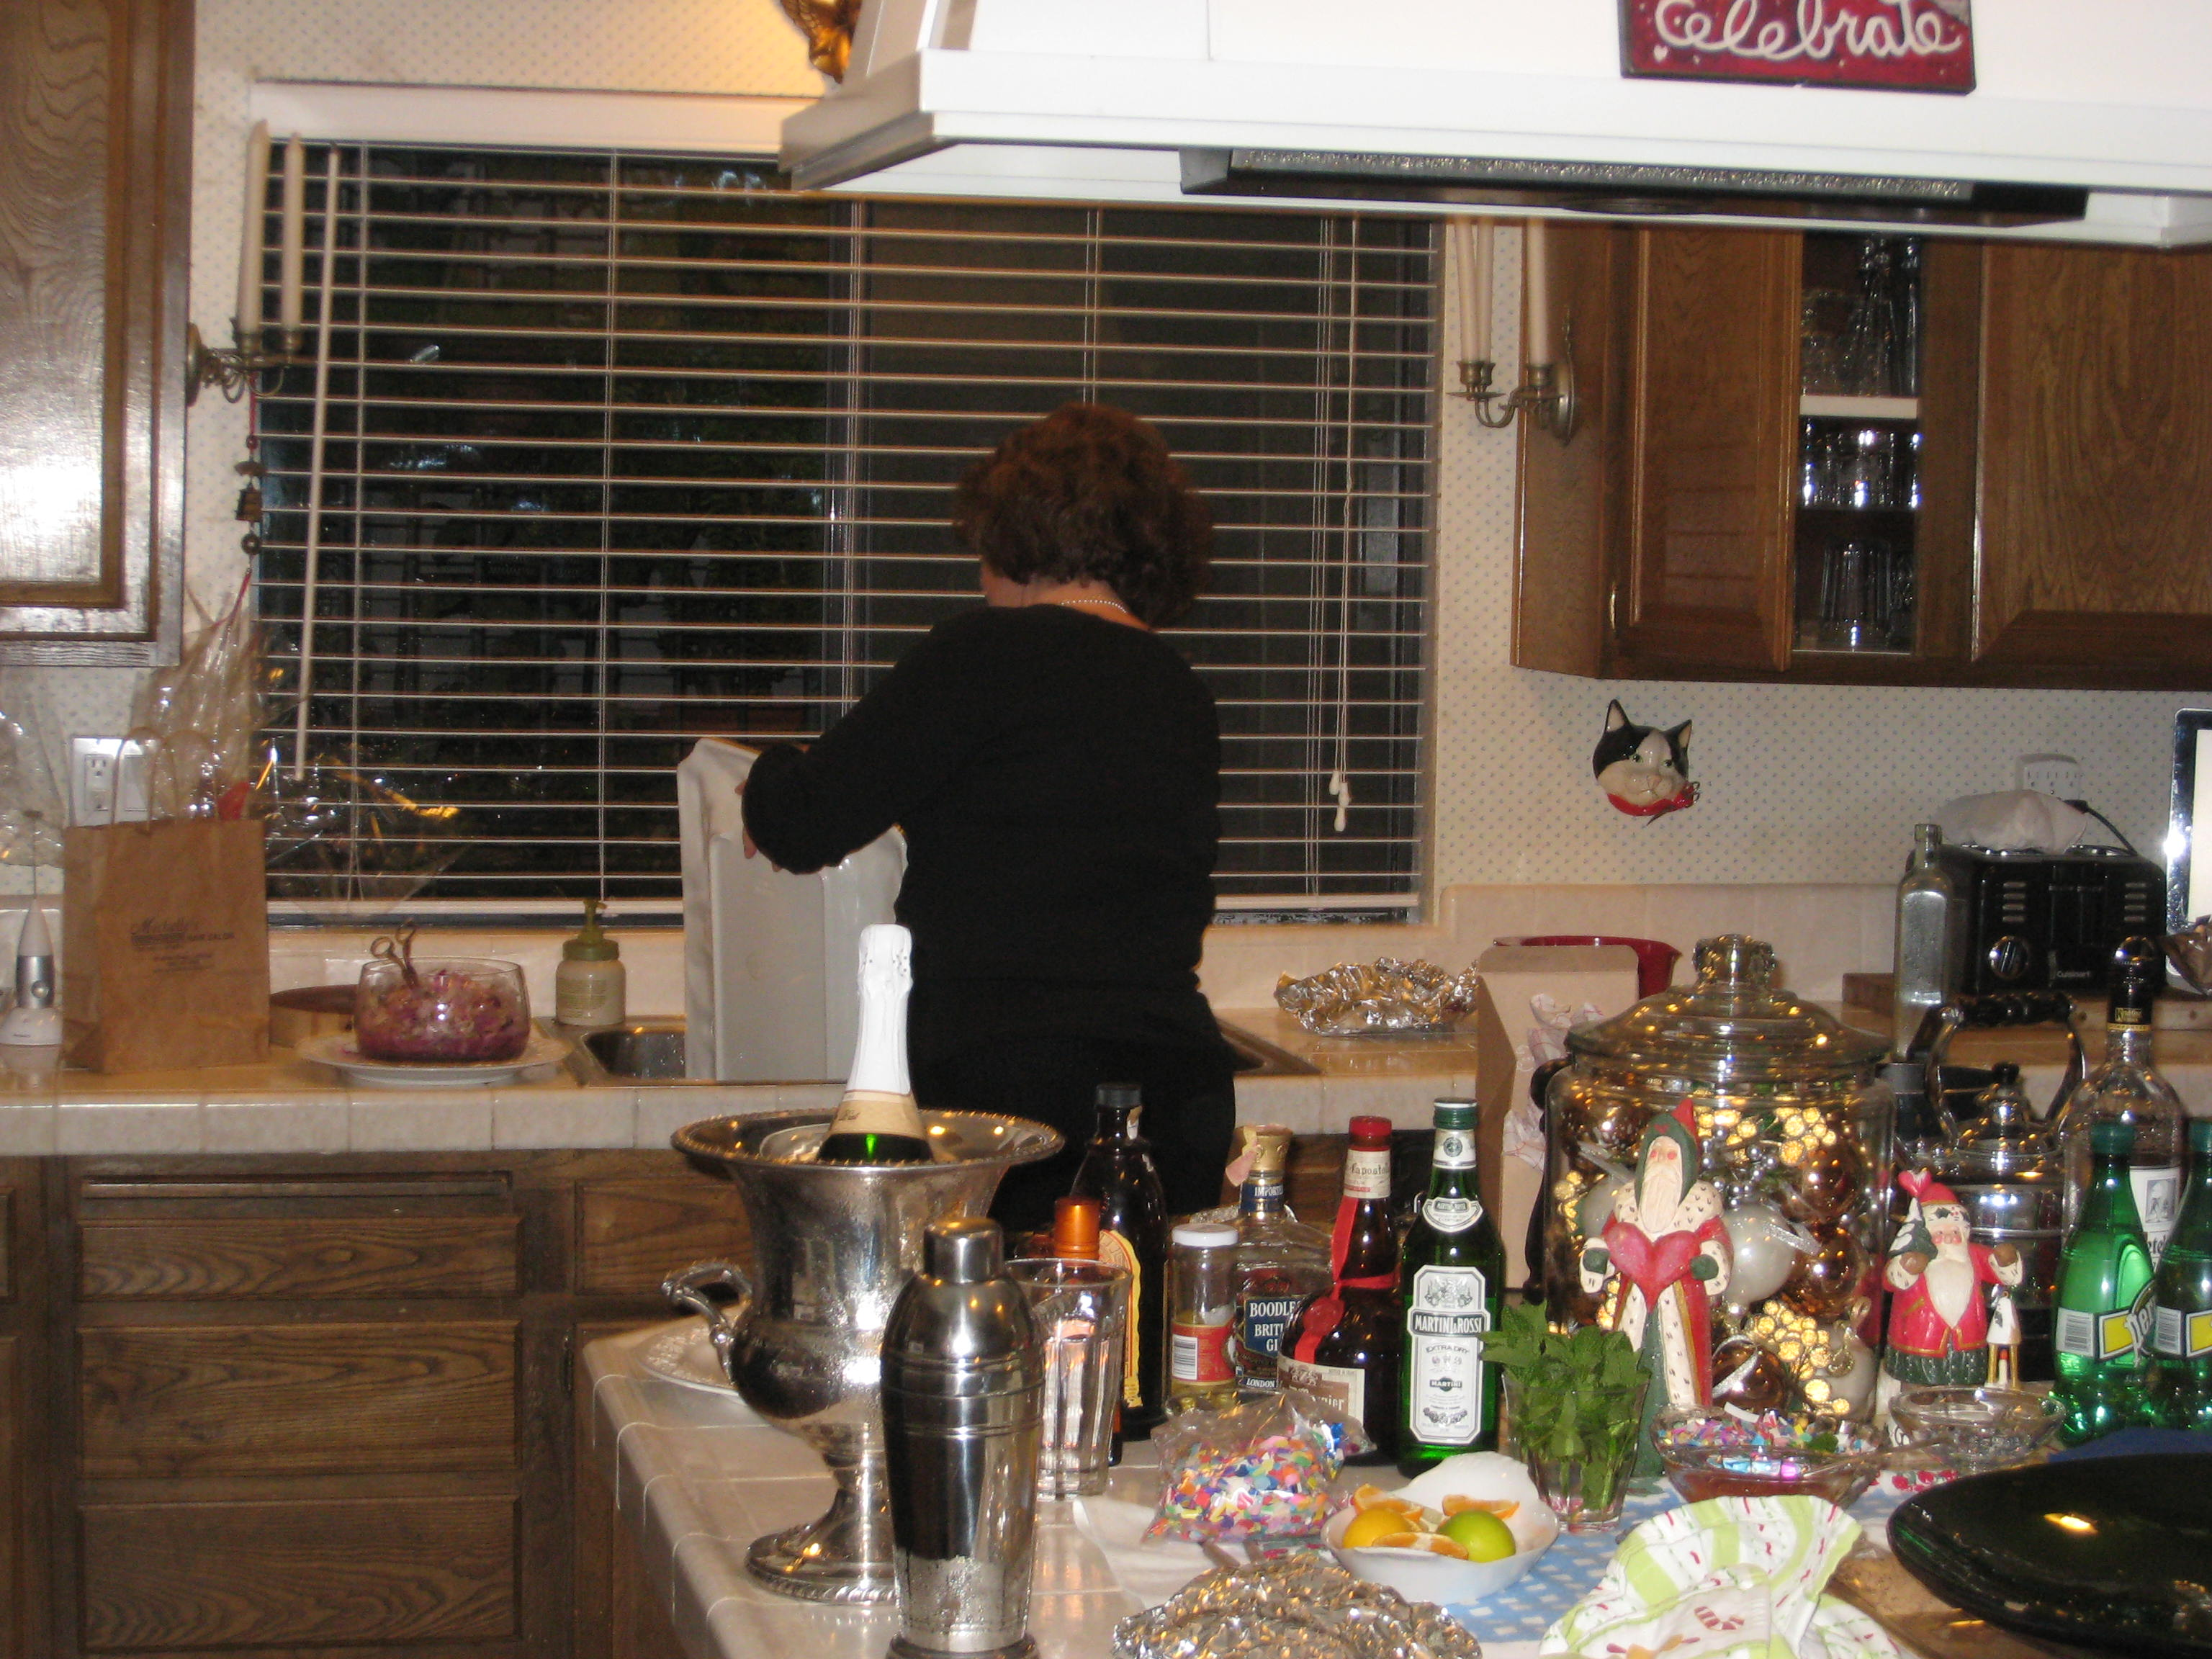 missjunebug's P.I.C. prepares last year's Rockin' New Year's Fun! Photo by mjb2009